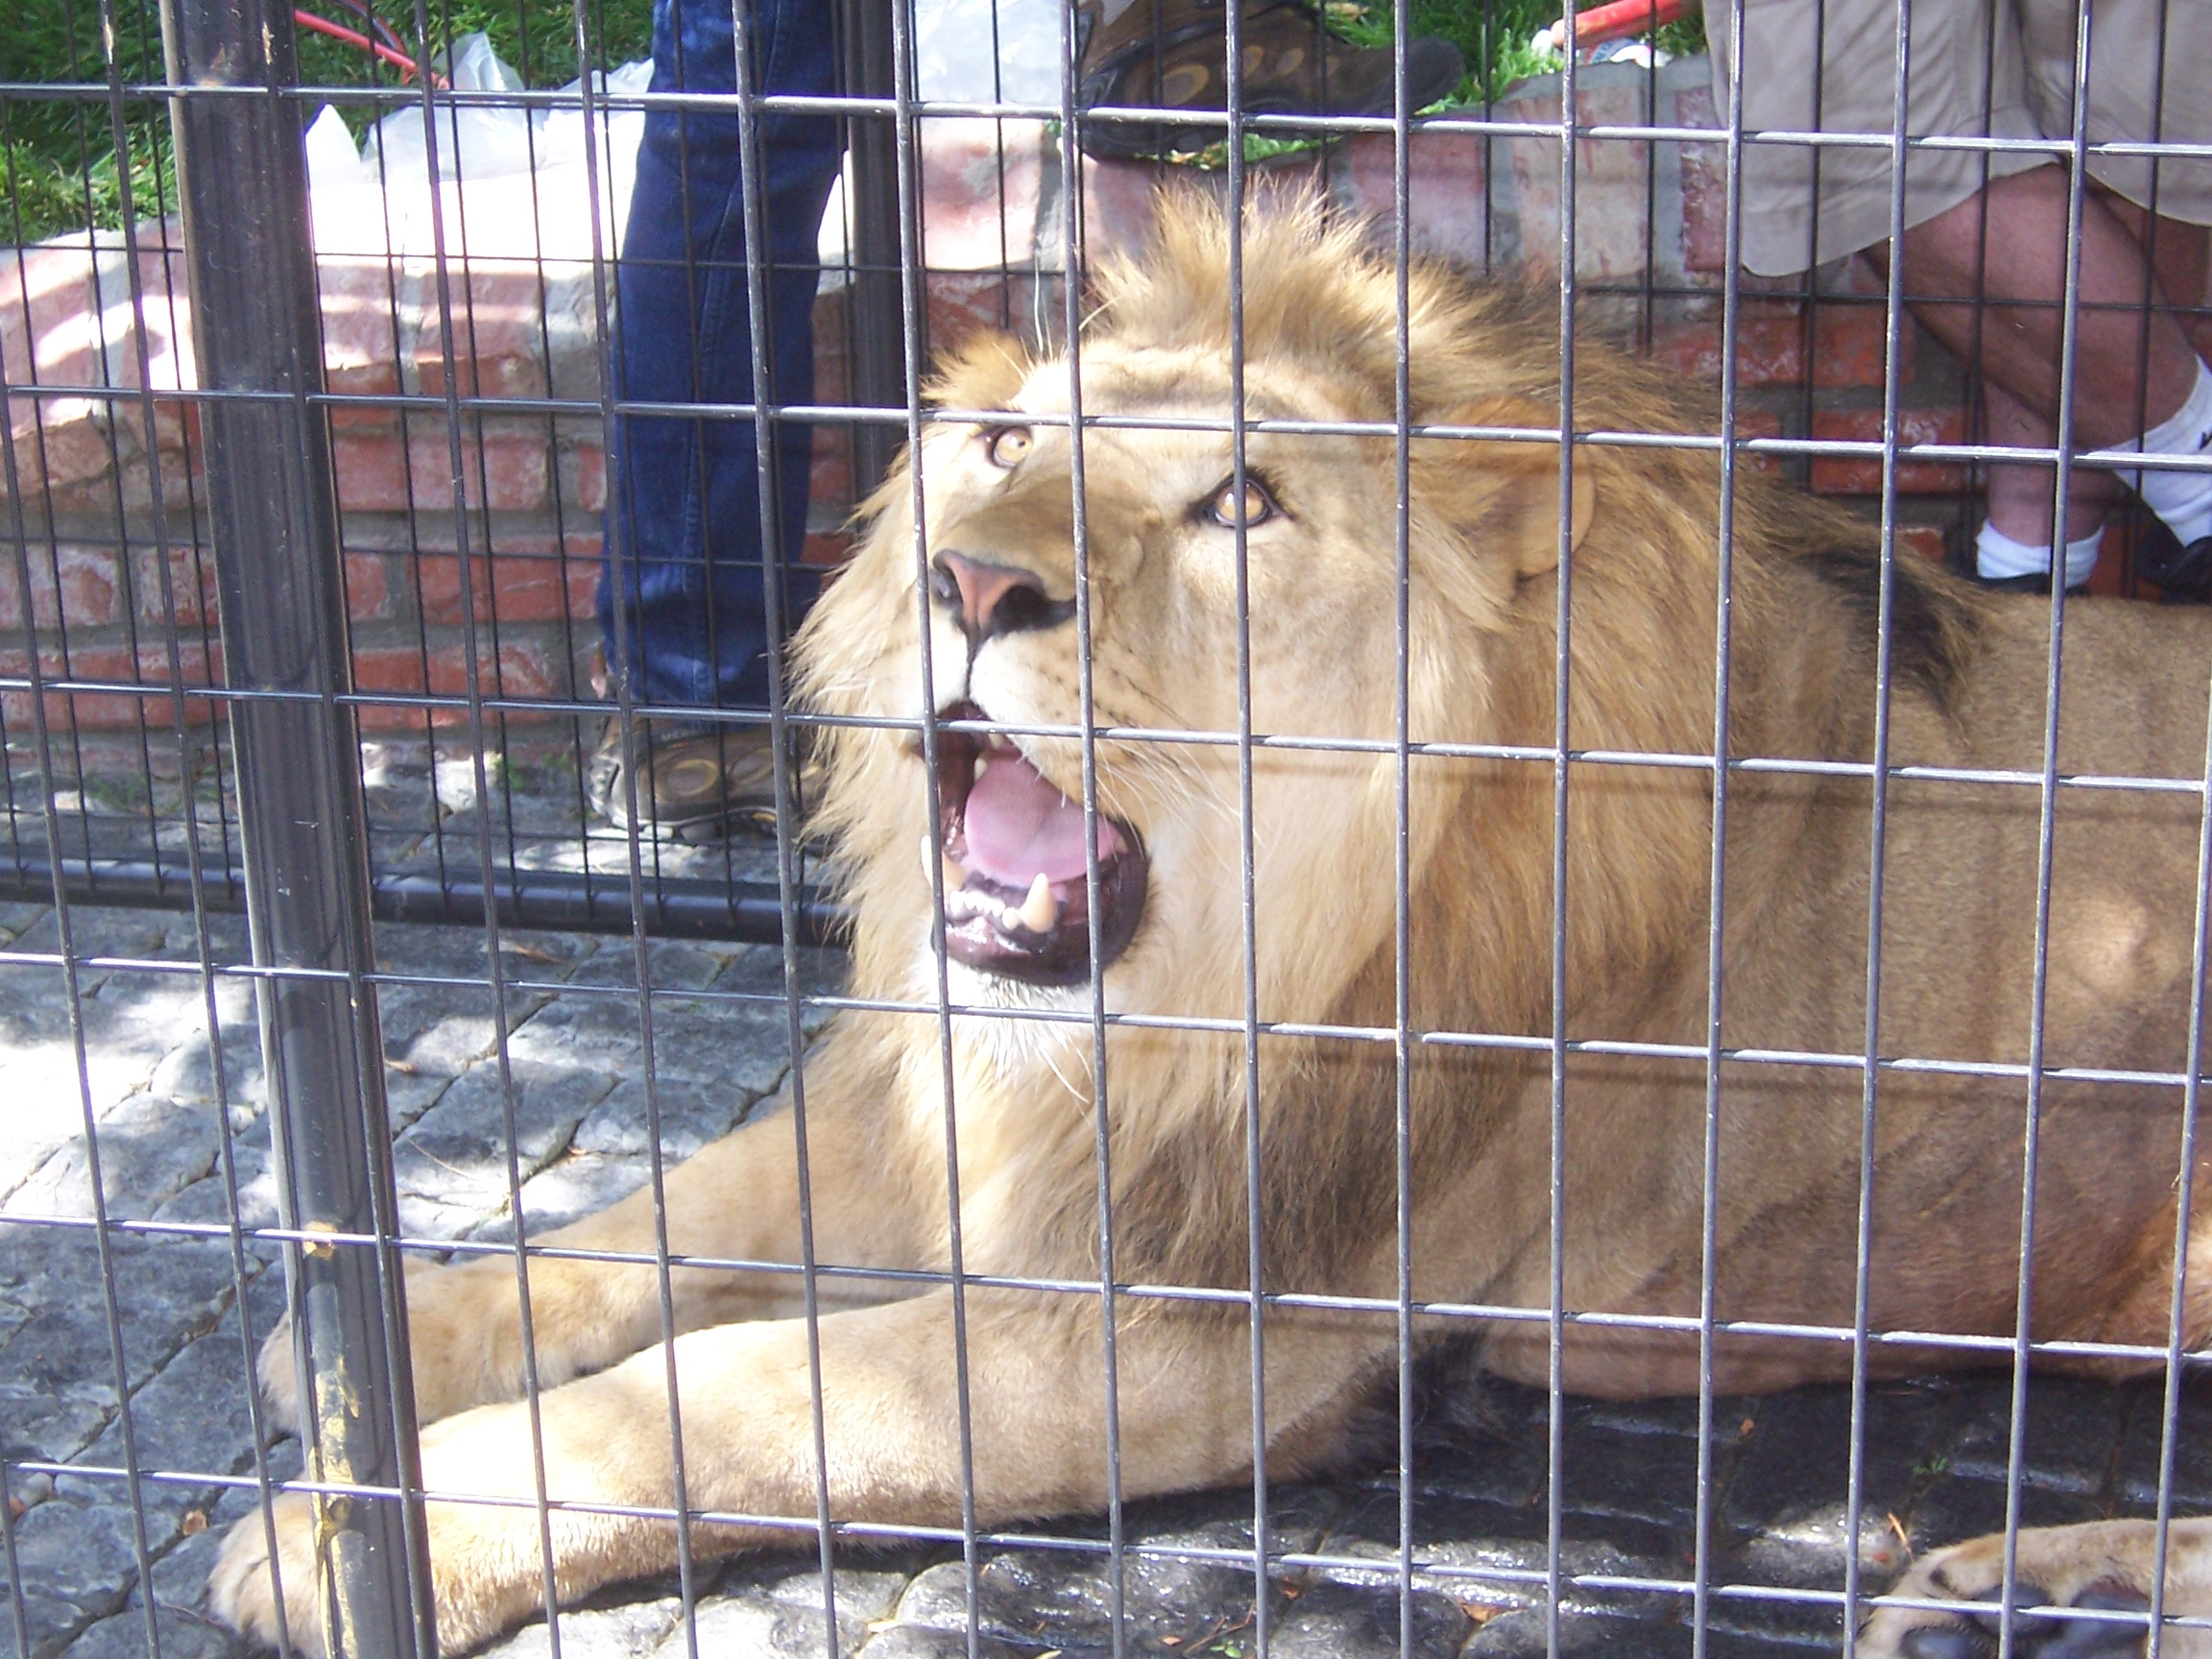 File:Lion in captivity.JPG - Wikimedia Commons